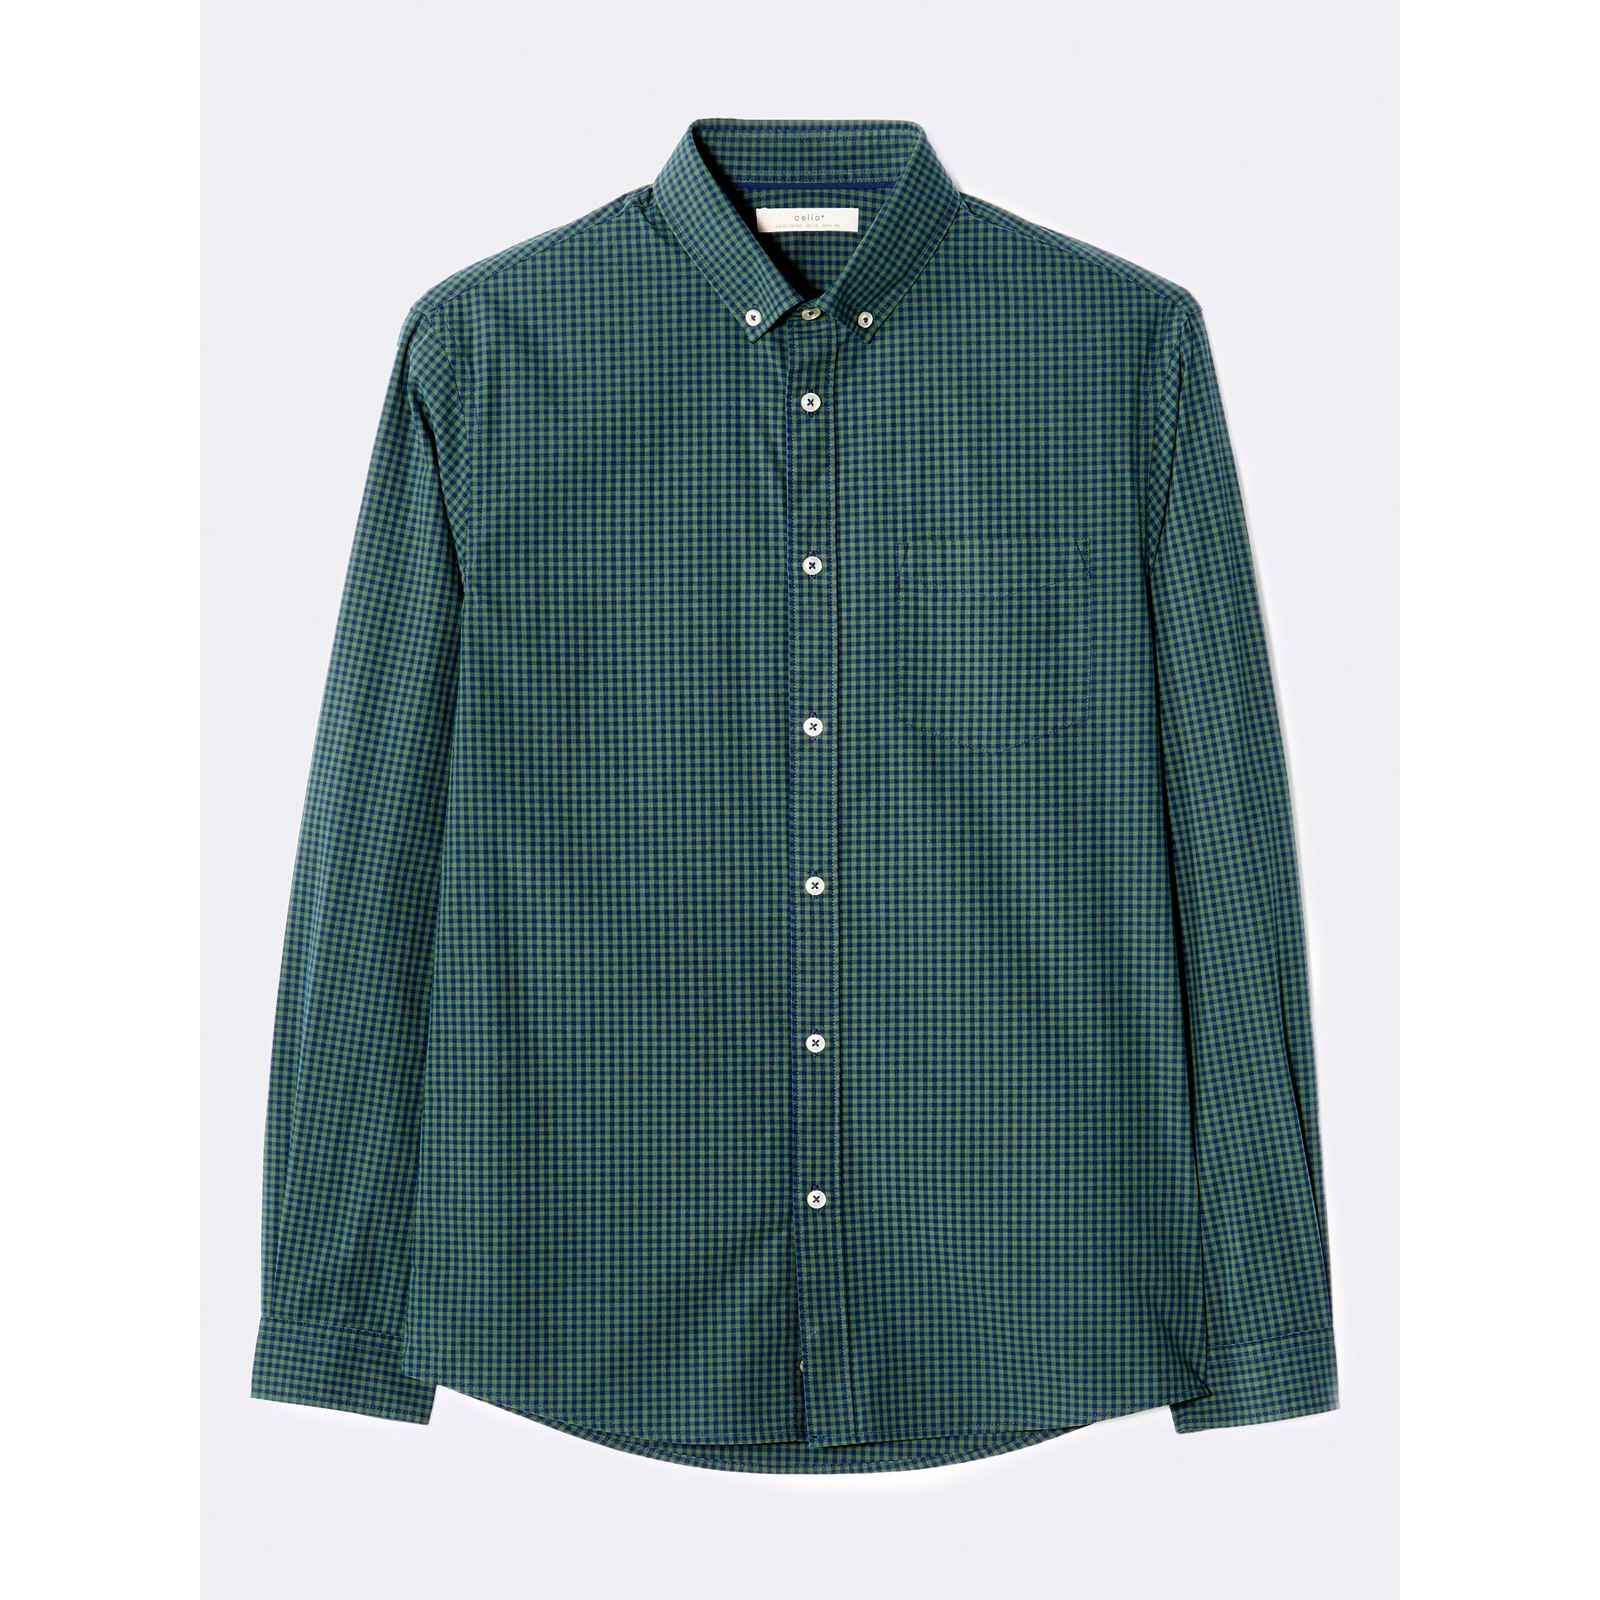 Celio Mavichy1 - Chemise manches longues - vert   BrandAlley 9a481894bf1